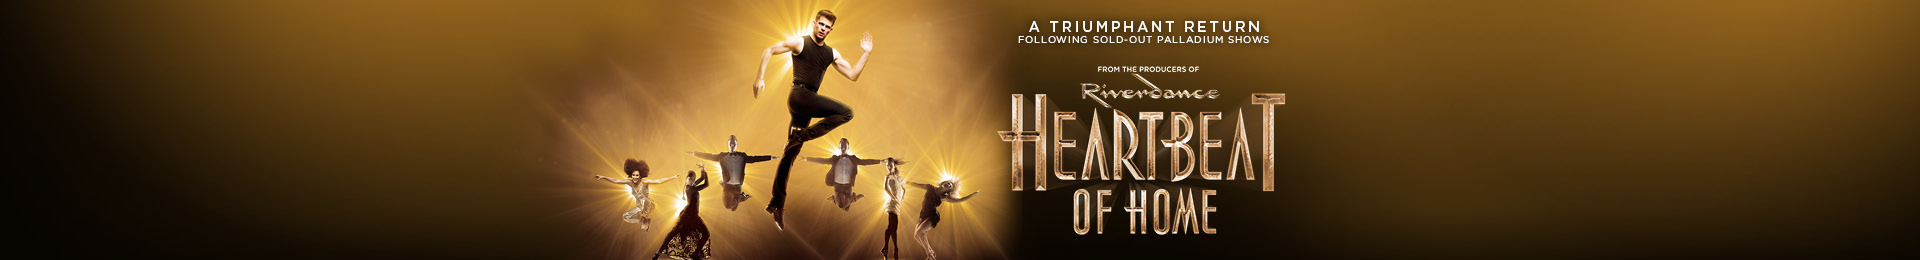 Heartbeat Of Home banner image